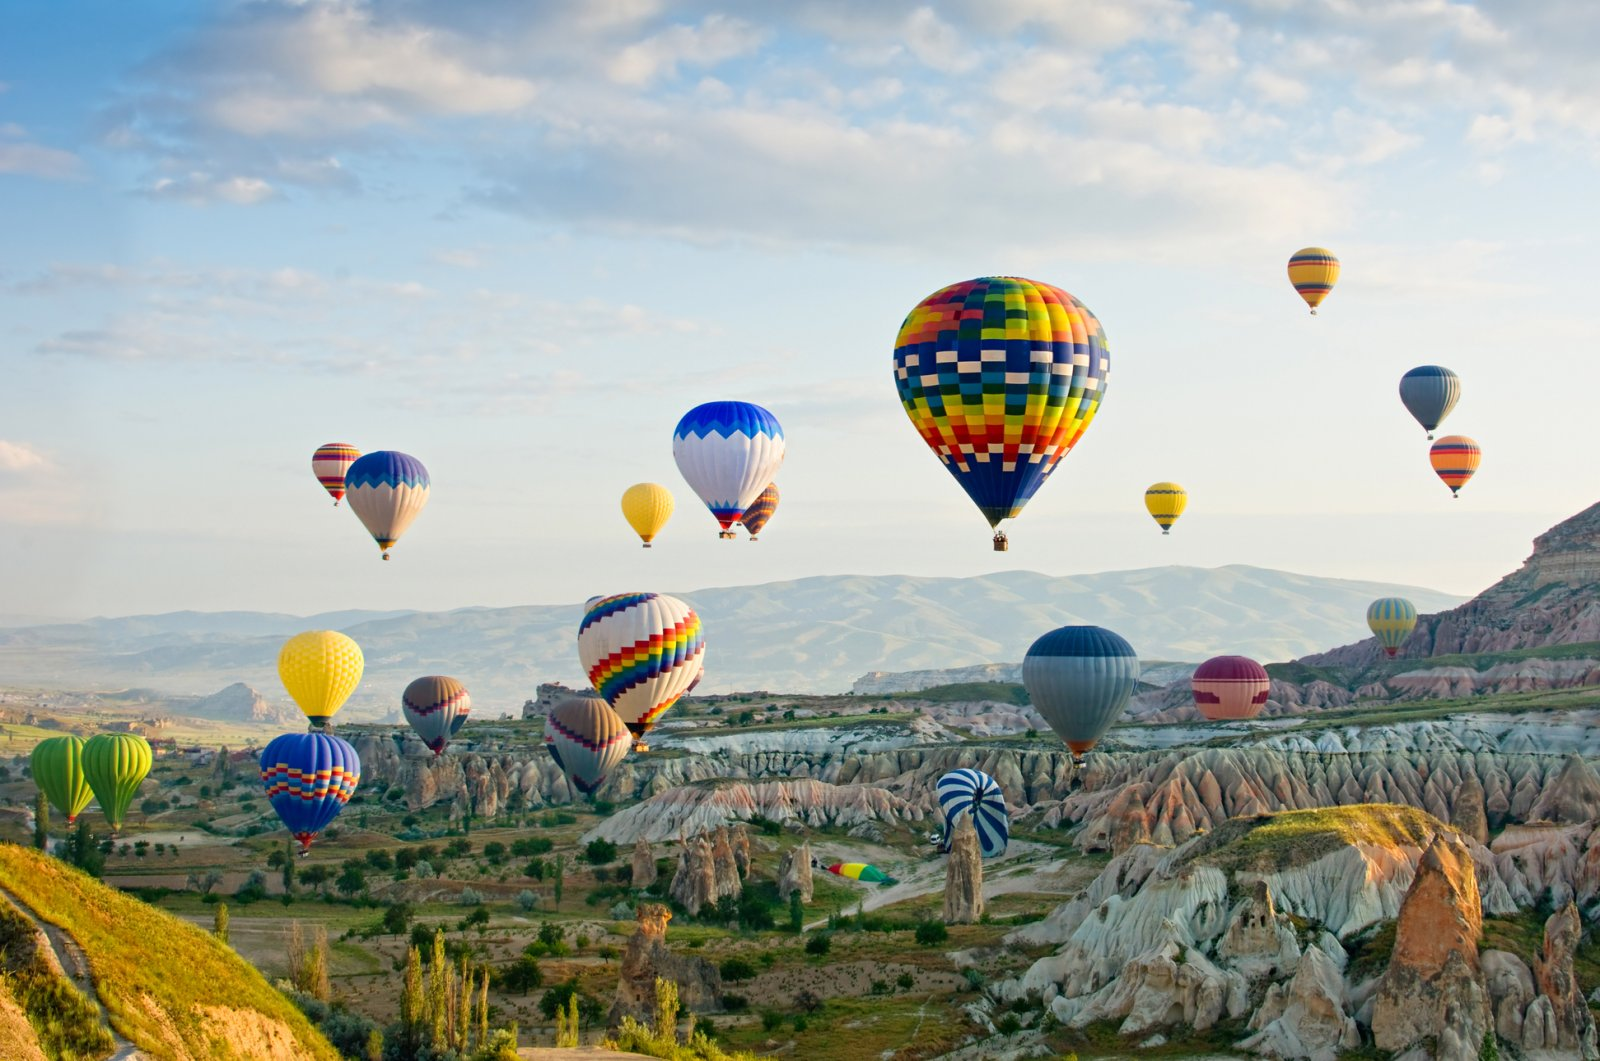 Cappadocia is one of the top tourist destinations in Turkey.